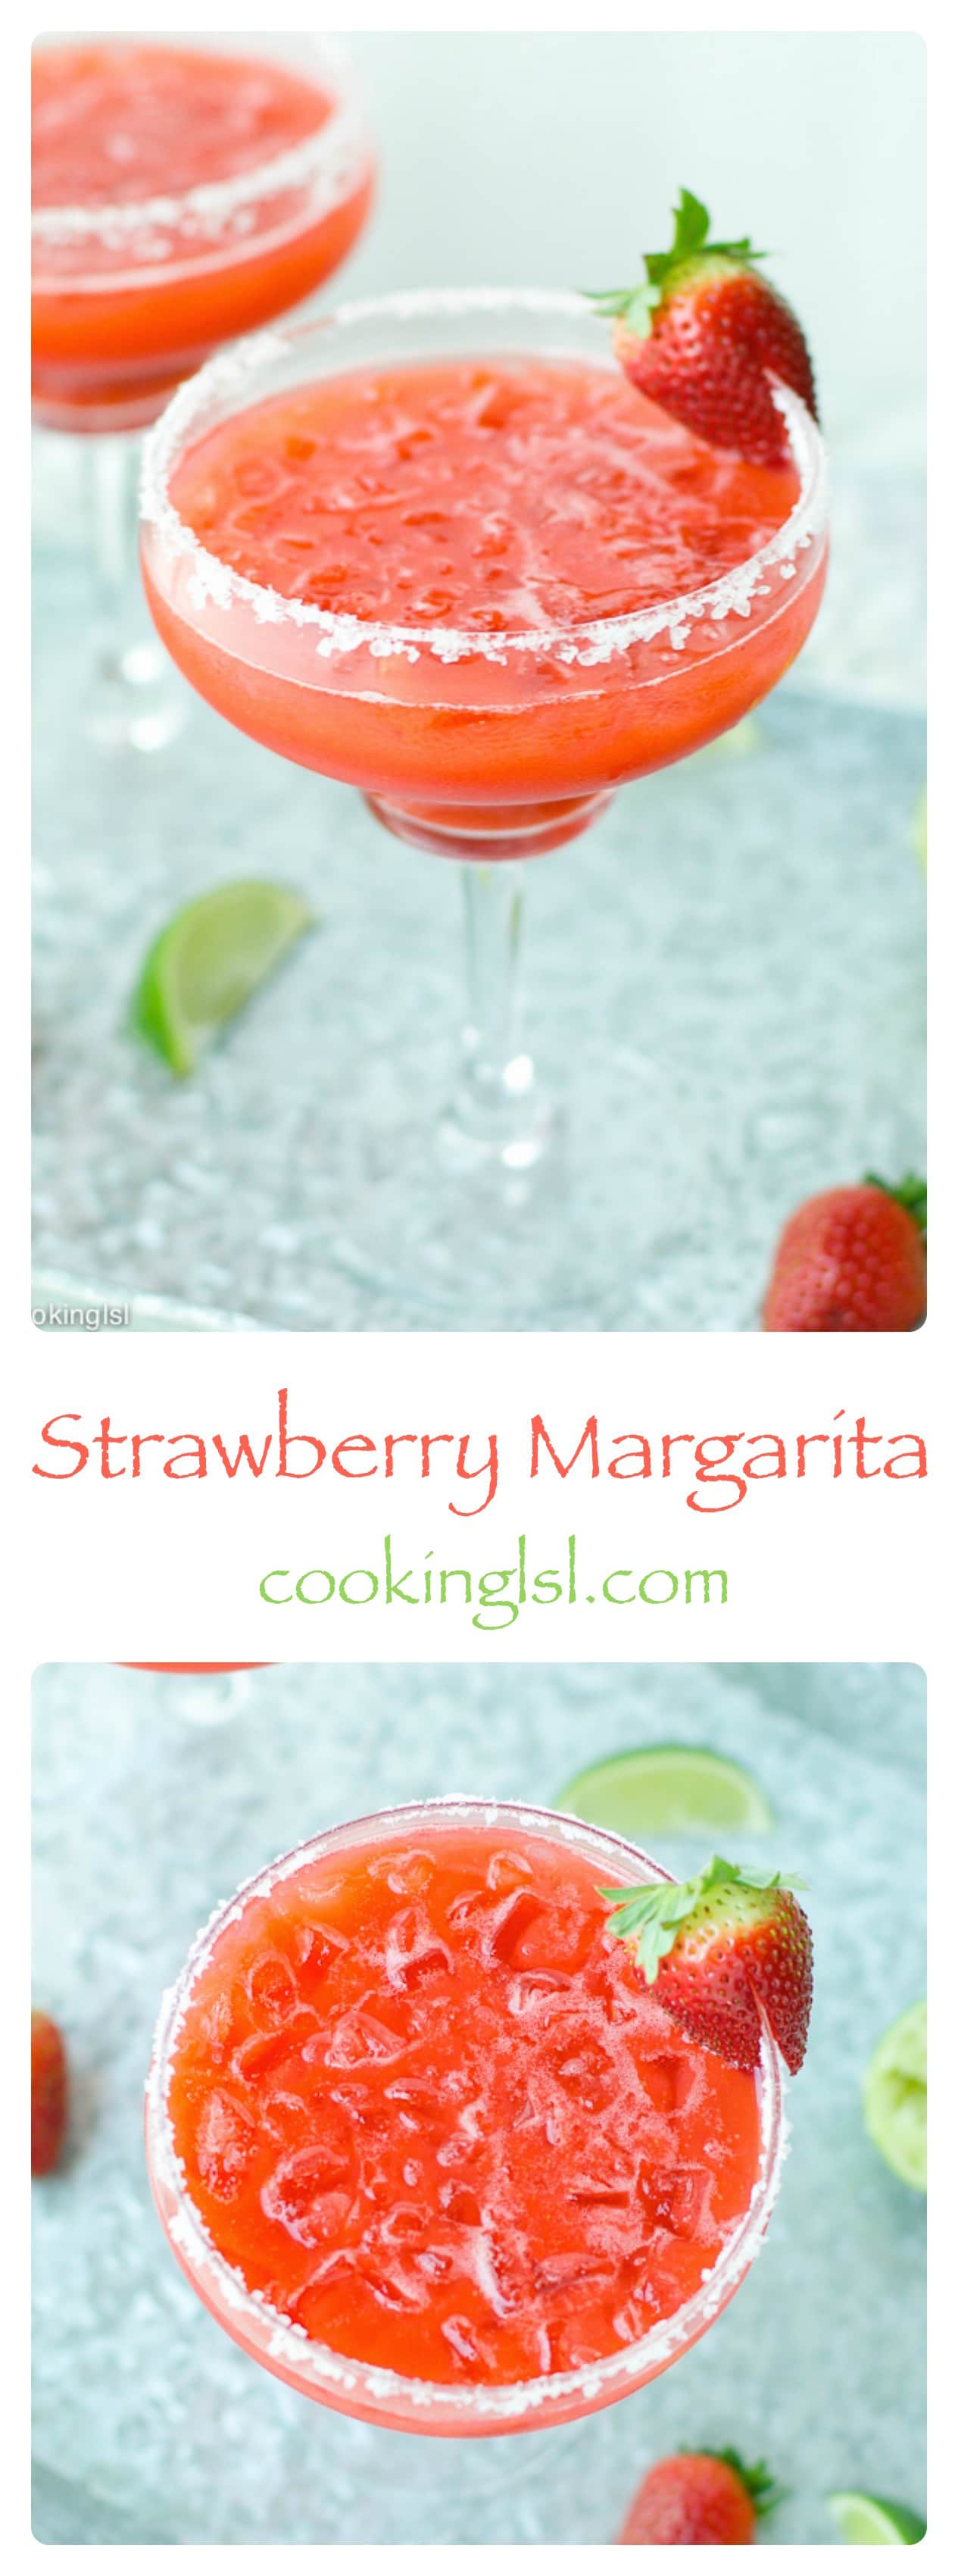 Easy-Fresh-Strawberry-Margarita-recipe-on-the-rocks-summer-MemorialDay-blender